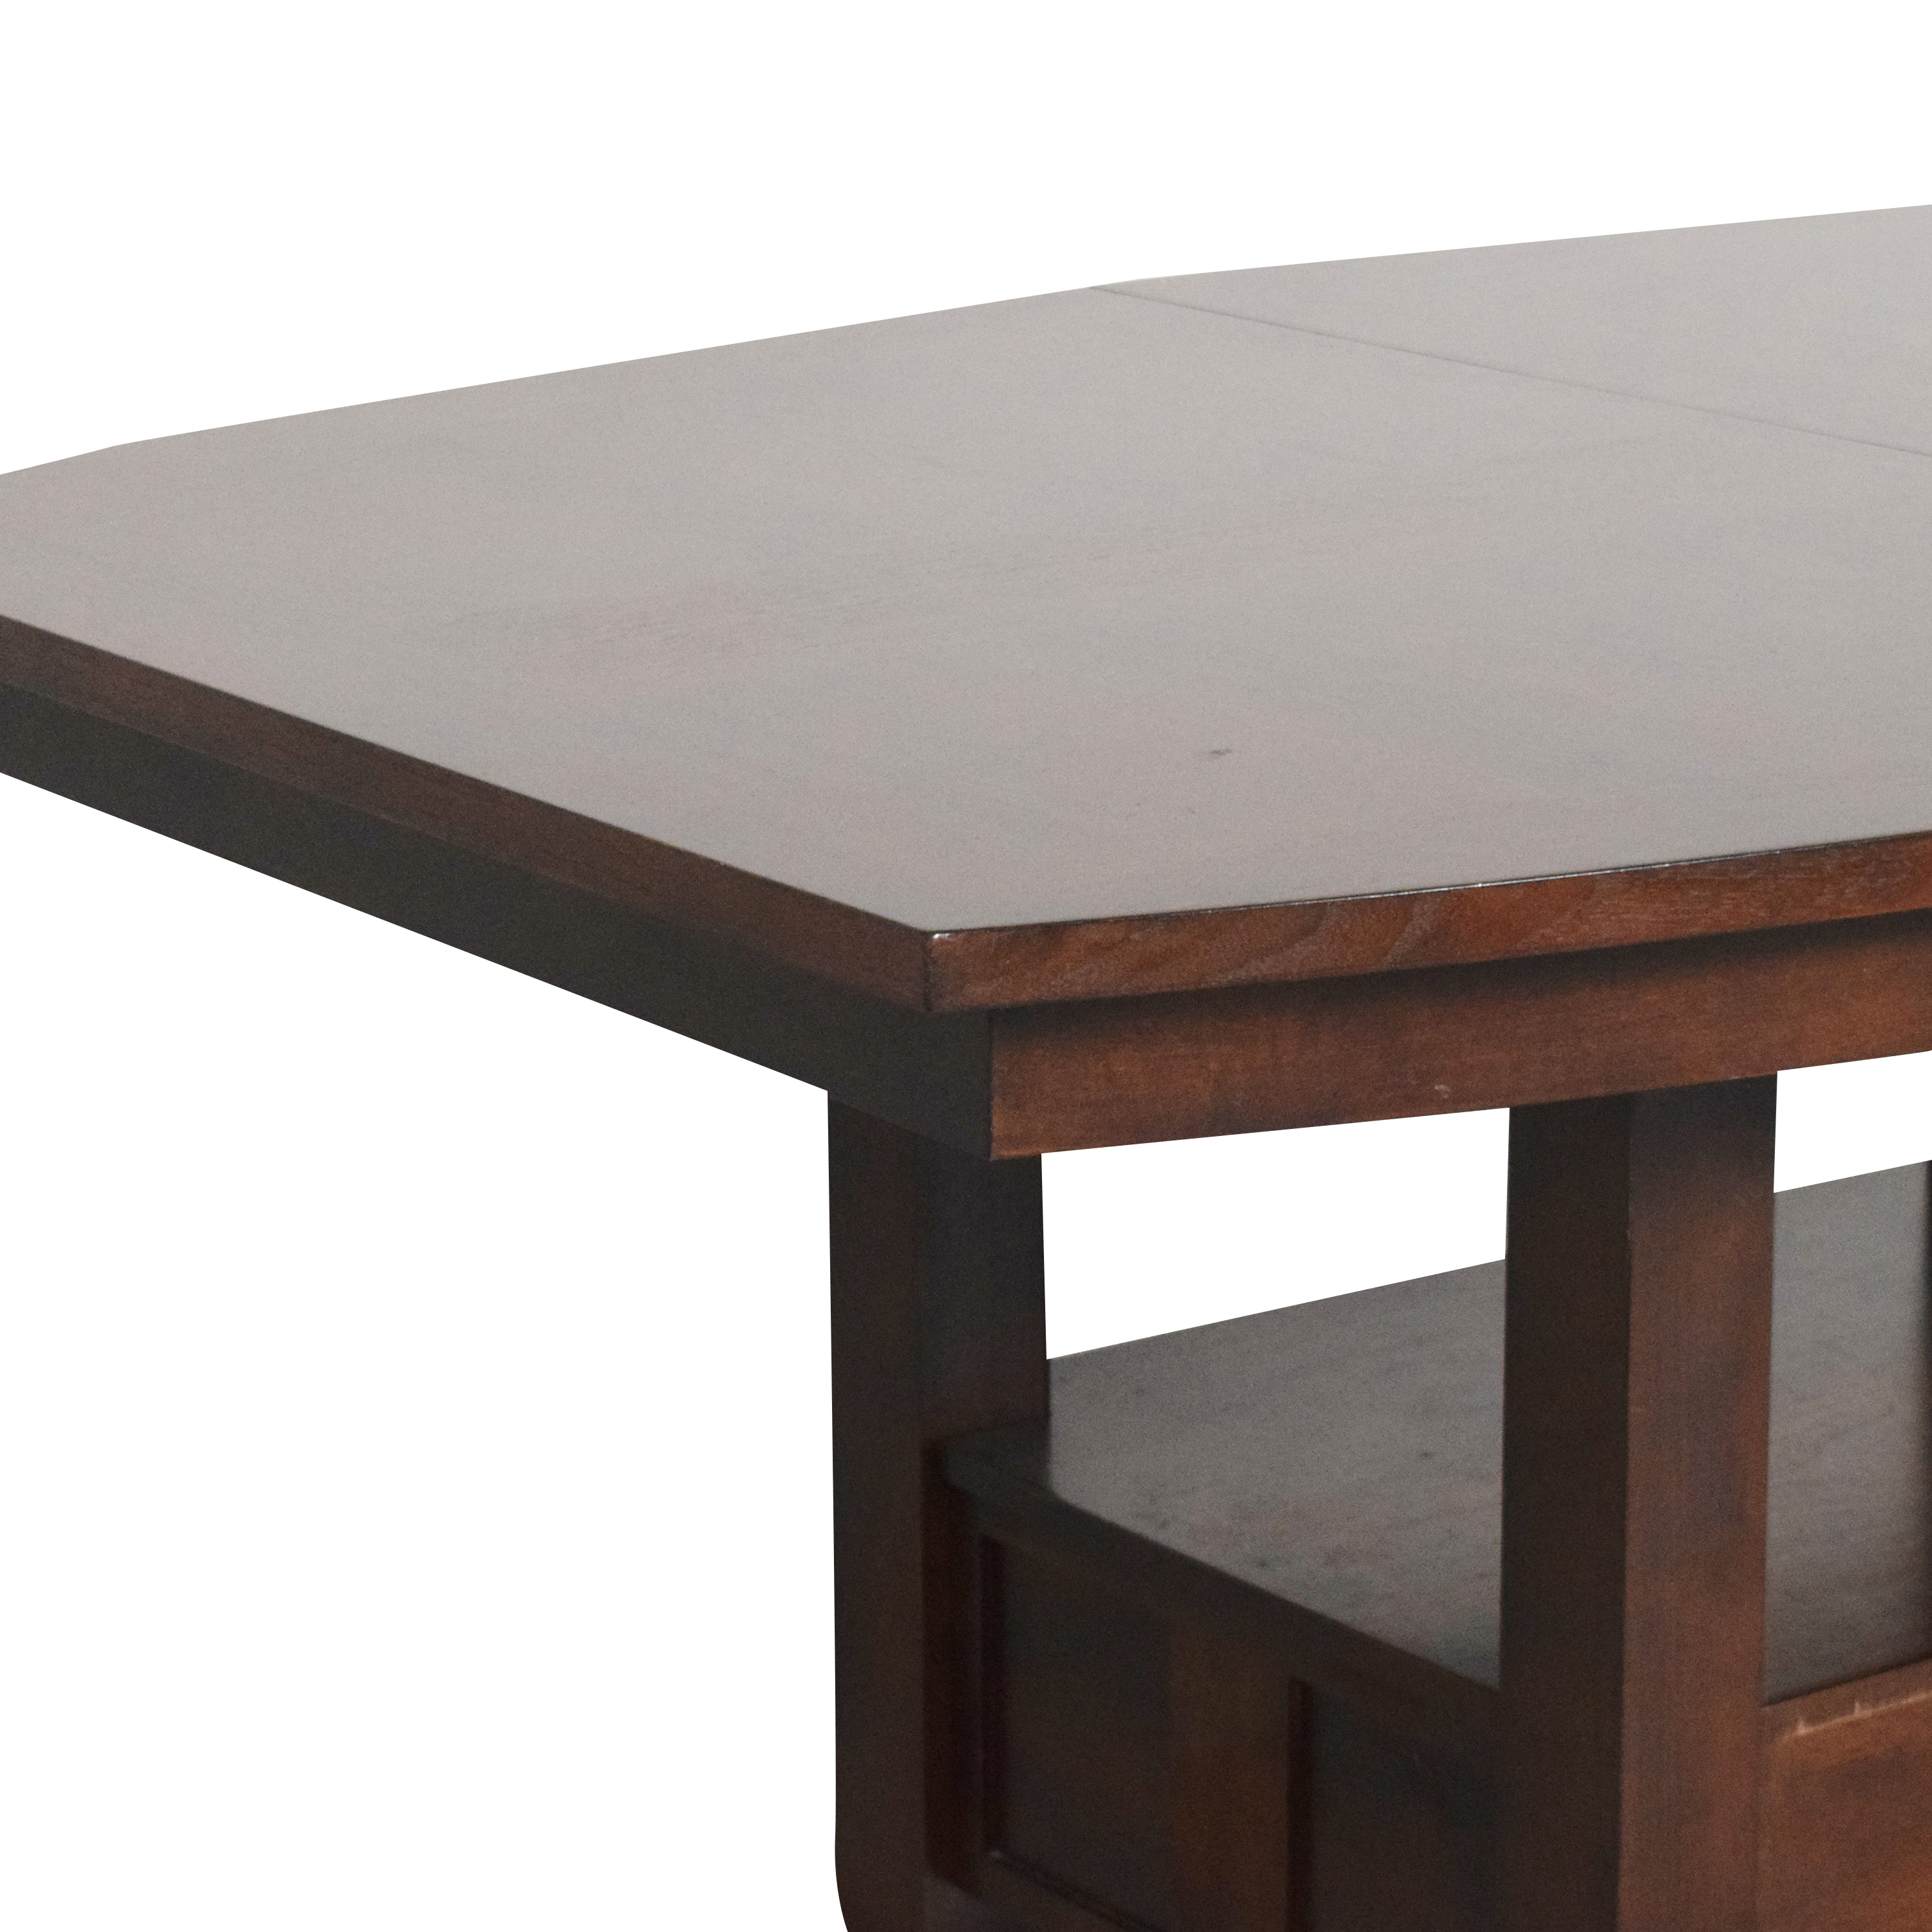 Broyhill Furniture Broyhill Furniture Extendable Dining Table dark brown